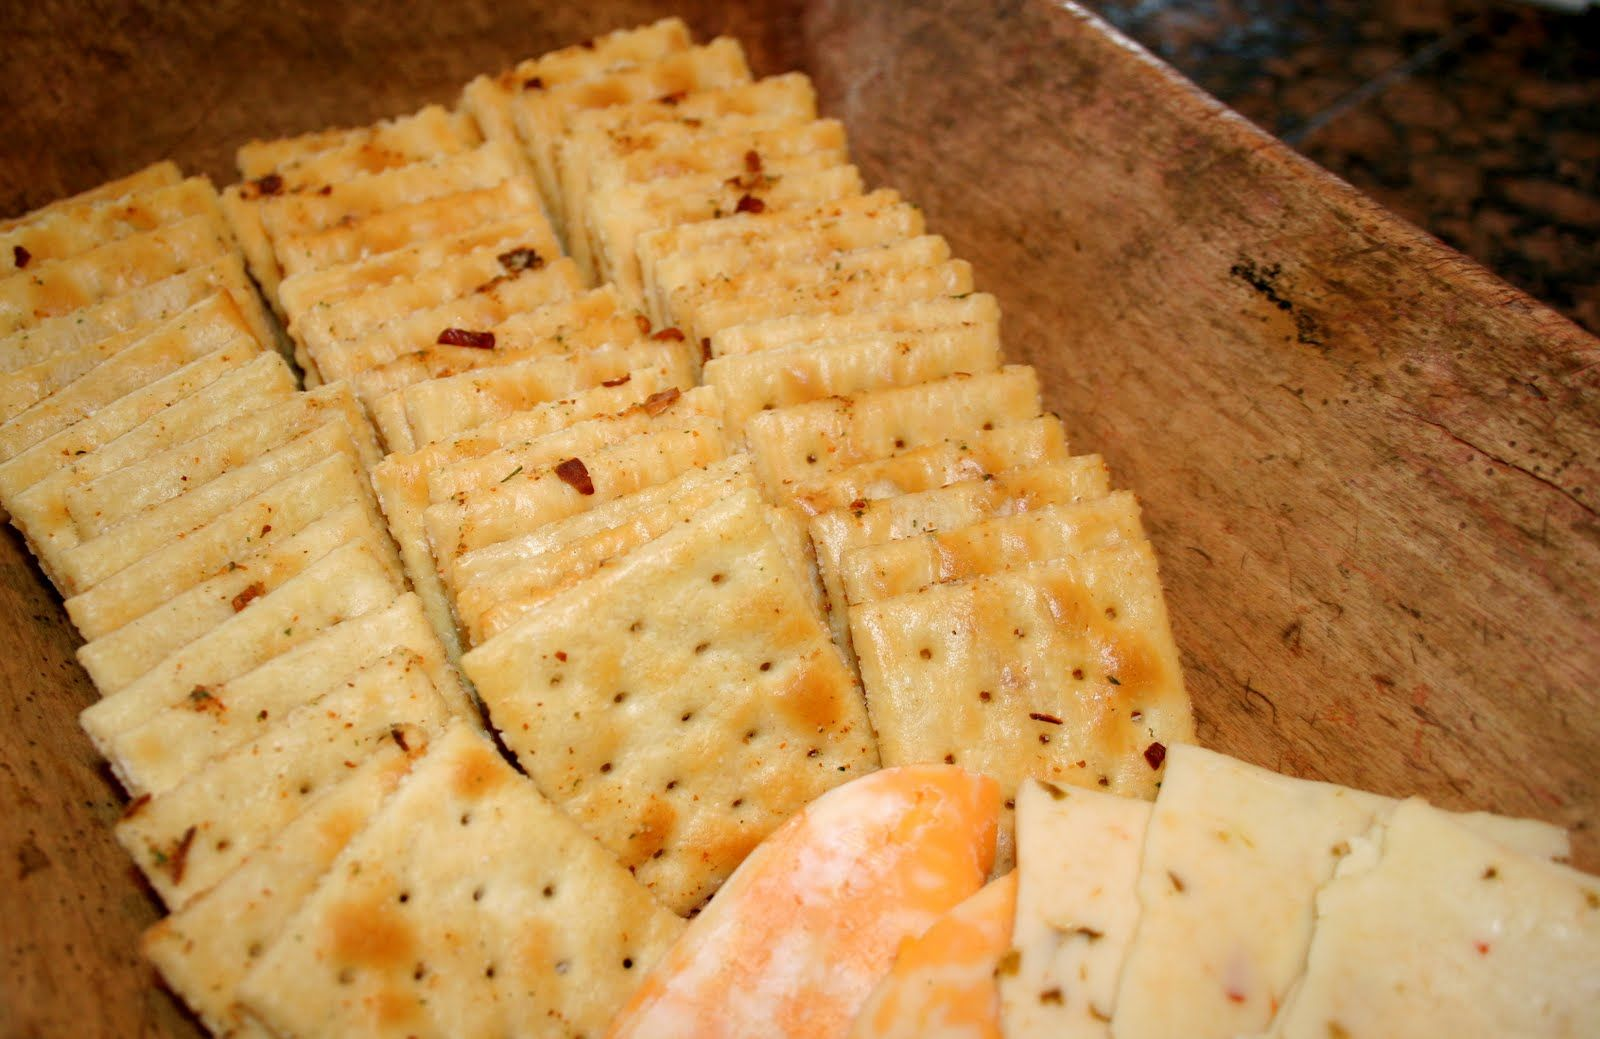 Magic Crackers!   Whisk together: 1 package of Hidden Valley Ranch Salad Dressing Mix 1 1/2 Cups Canola Oil 2 tsps. Garlic Powder 1-2 tsps. Cayenne Pepper 2 Tbs. Dried Red Pepper Flakes Pour over crackers! Cover tightly and flip! Do this for half an hour, flipping every 5 minutes!